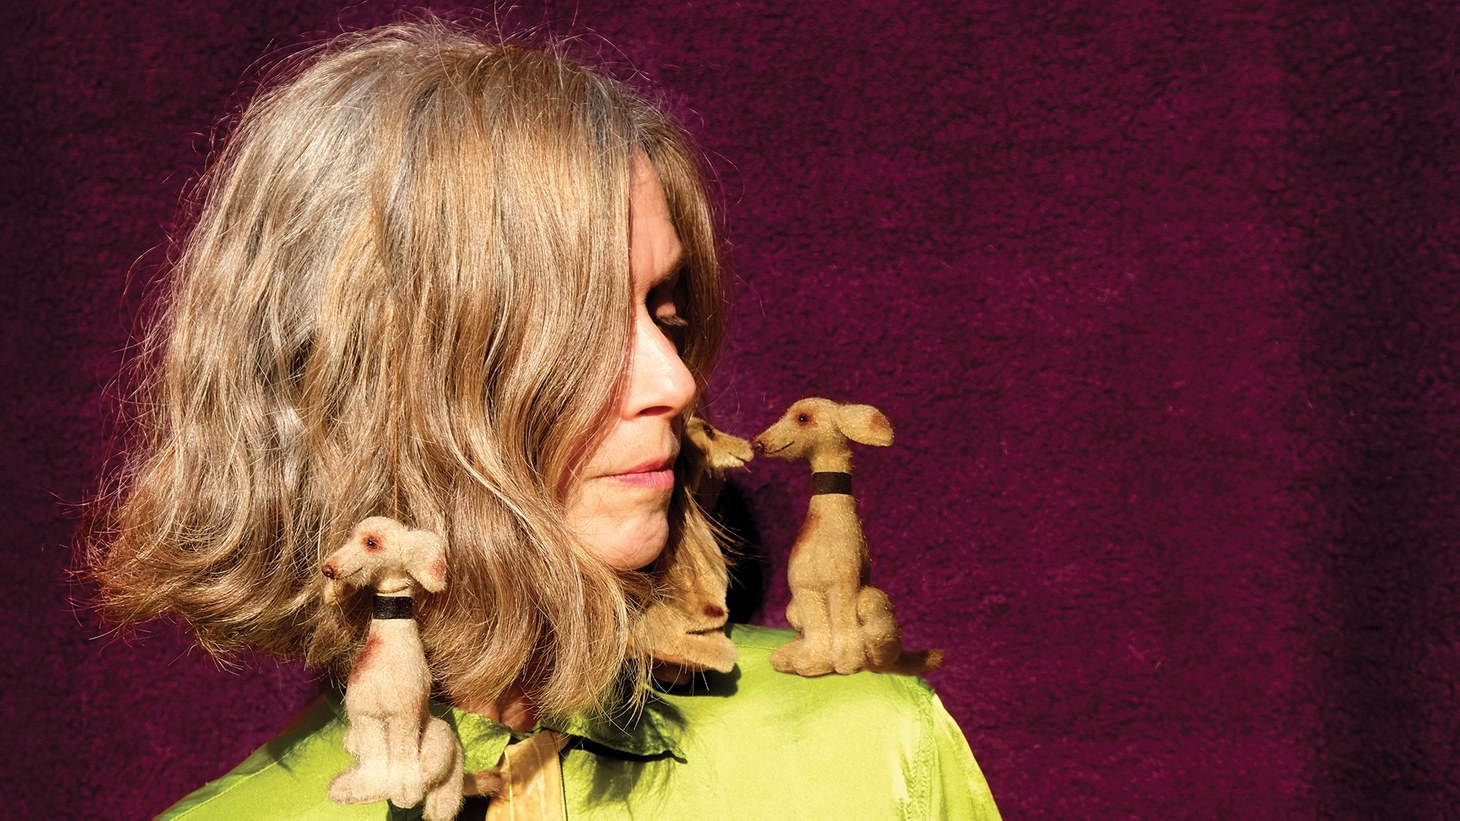 """Celebrate the 21st anniversary of """"Segundo,"""" the sophomore album by lo-fi experimental indie guru Juana Molina that lead to her international success, and her homeland Argentina's Independence Day, by listening to a remastered version of """"El…"""